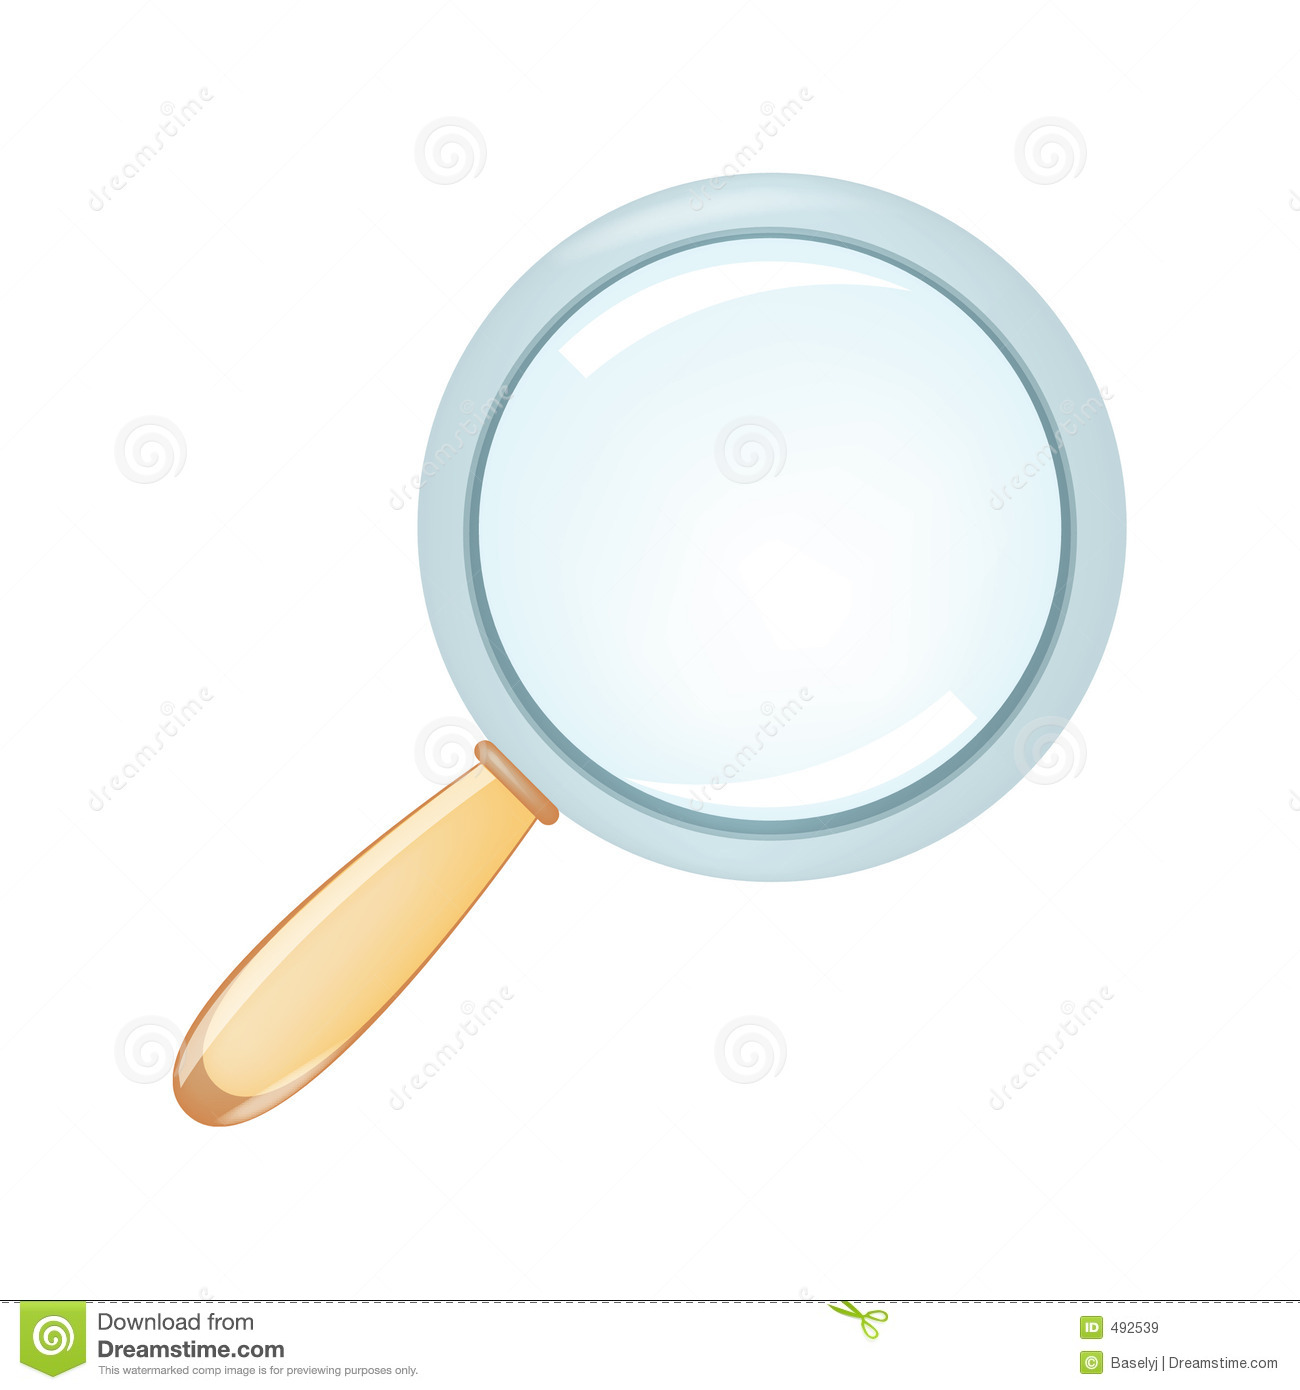 Magnifier Royalty Free Stock Images - Image: 492539